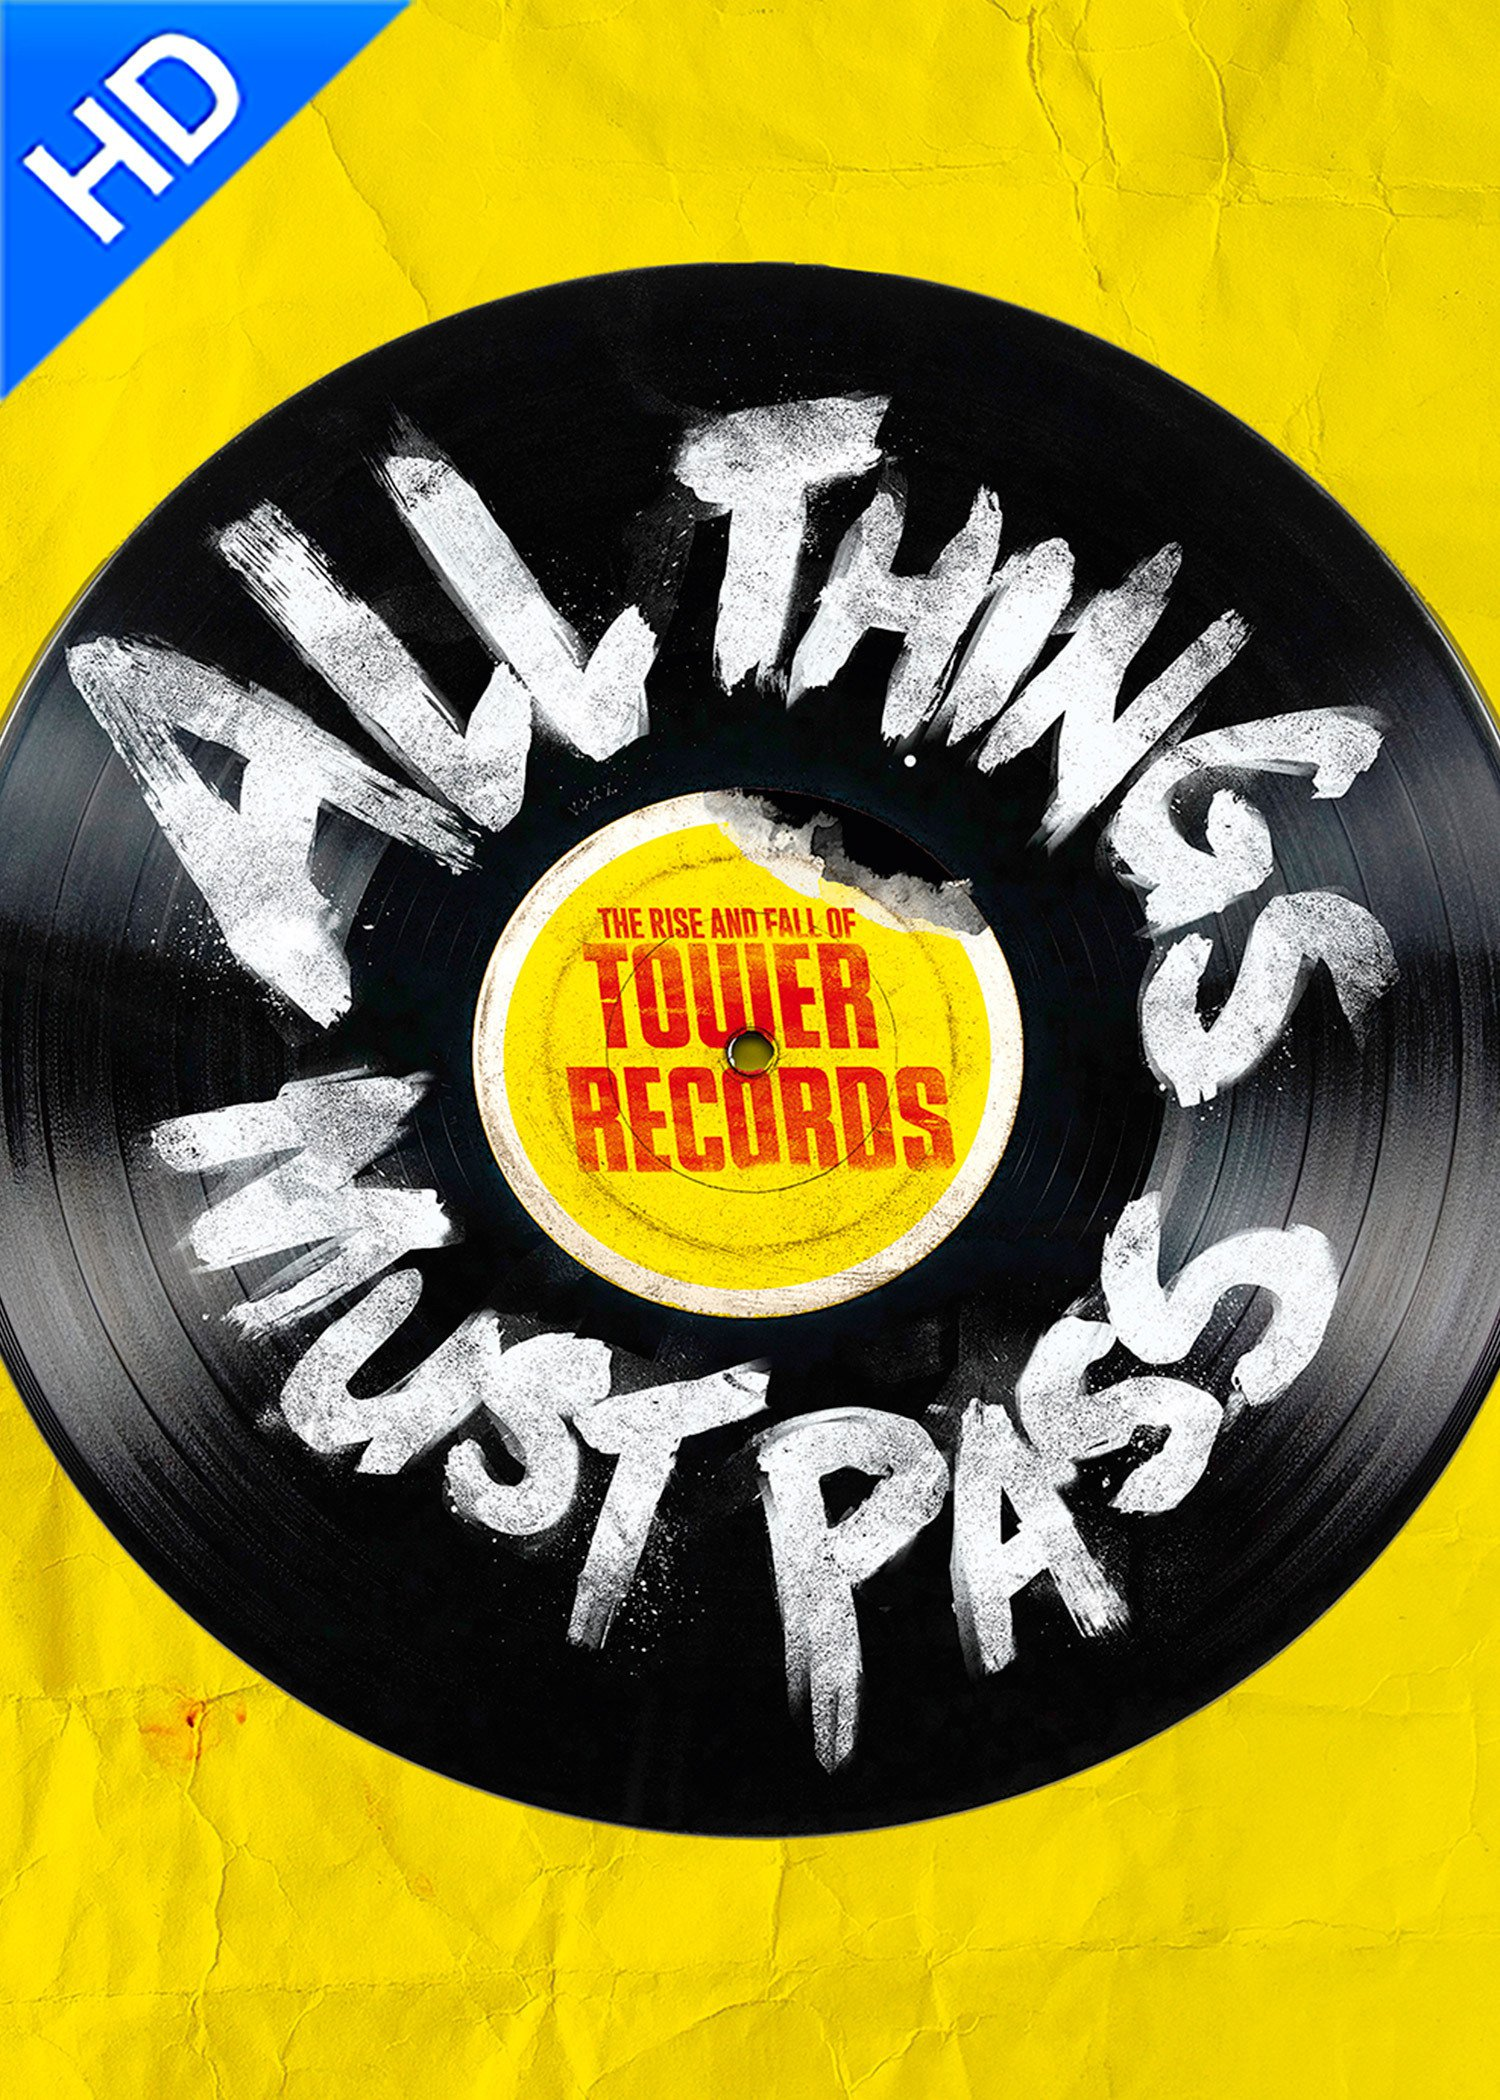 all-things-must-pass-the-rise-fall-of-tower-records